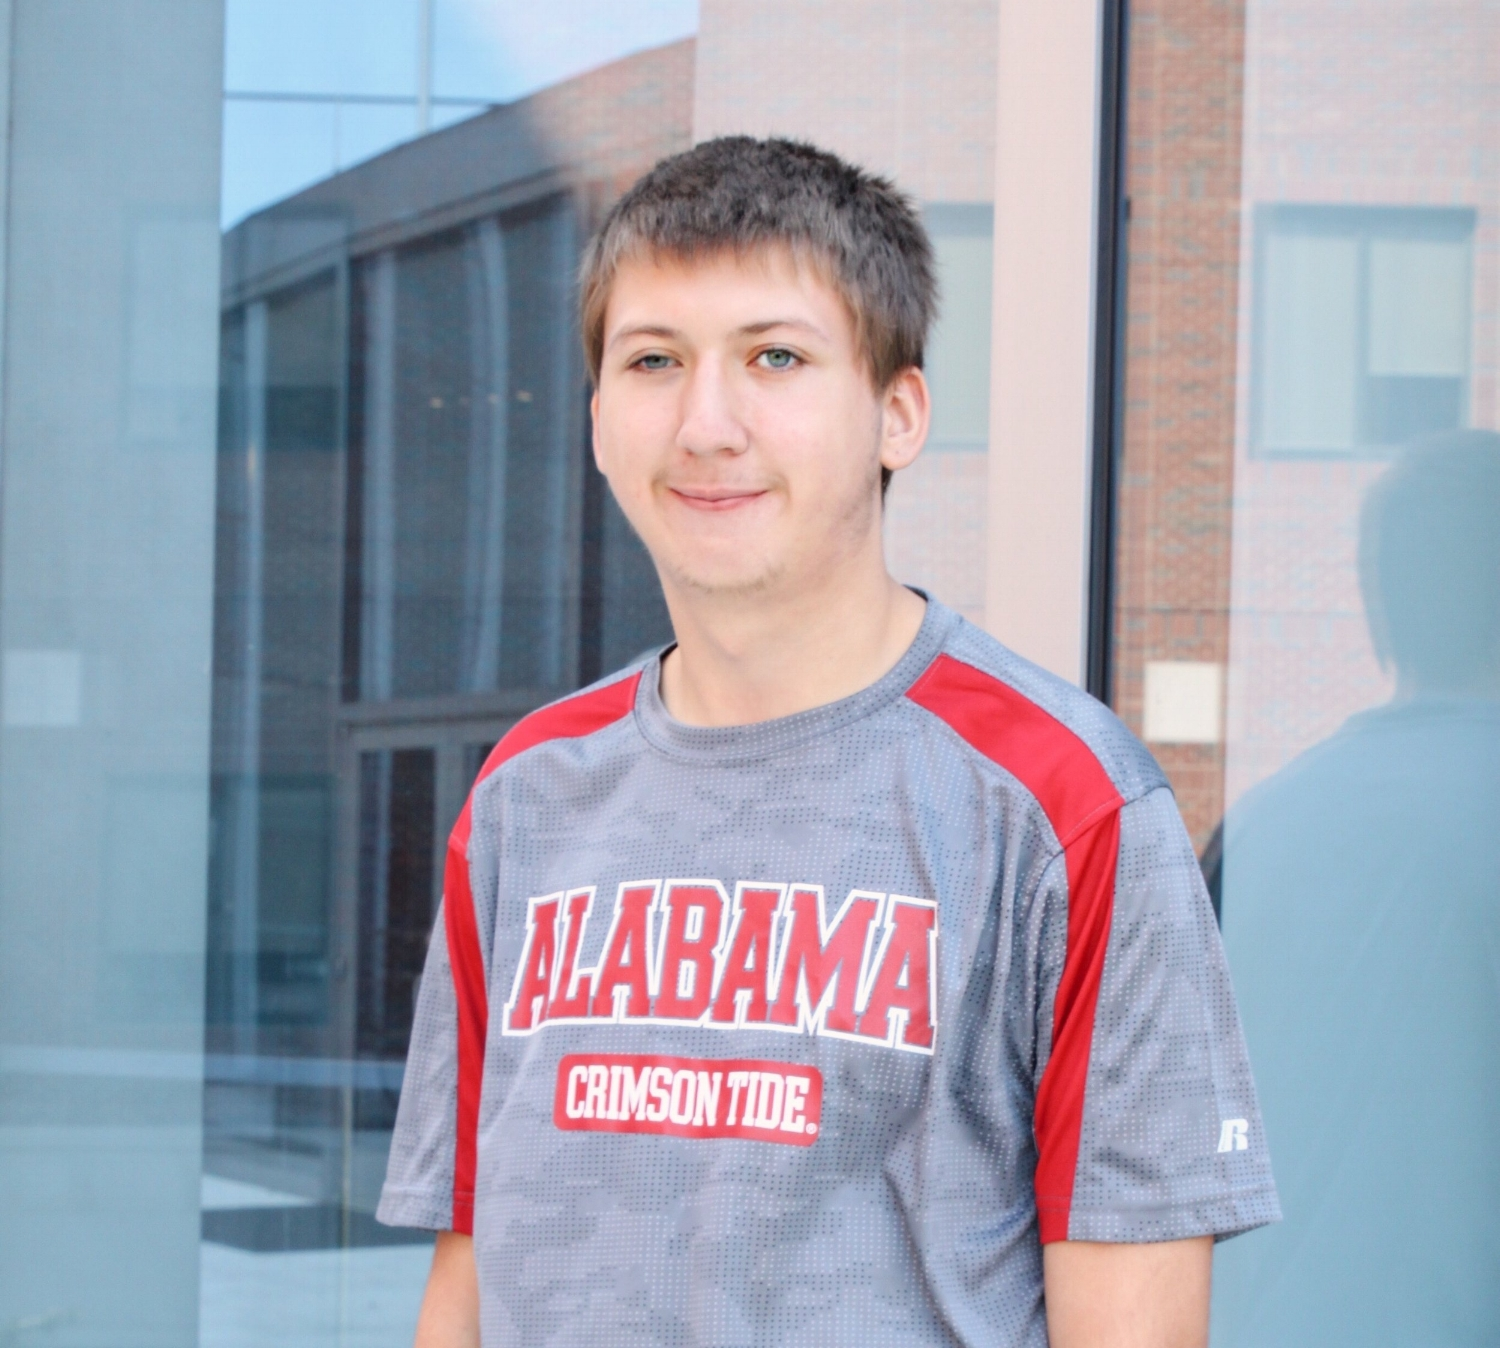 Trey - This is Trey Gober! After graduating from Holtville High School in May 2019, Trey is planning on pursuing a degree in robotic engineering at CACC. Trey loves his younger brother and sister. He has a passion for Alabama football, and will ruin your pride in a trivia contest in anything UA-sports related. Trey enjoys the simple things in life, with chicken and pizza topping his list of foods and his favorite color being red. Trey has been heavily involved with the scouts throughout his upbringing. During stressful times, Treys relies on the soothing feel of a dog's fur coat to raise his spirits. This is Trey's 2nd year with UADM, and he has enjoyed being a role model for all the younger kids involved in UADM.